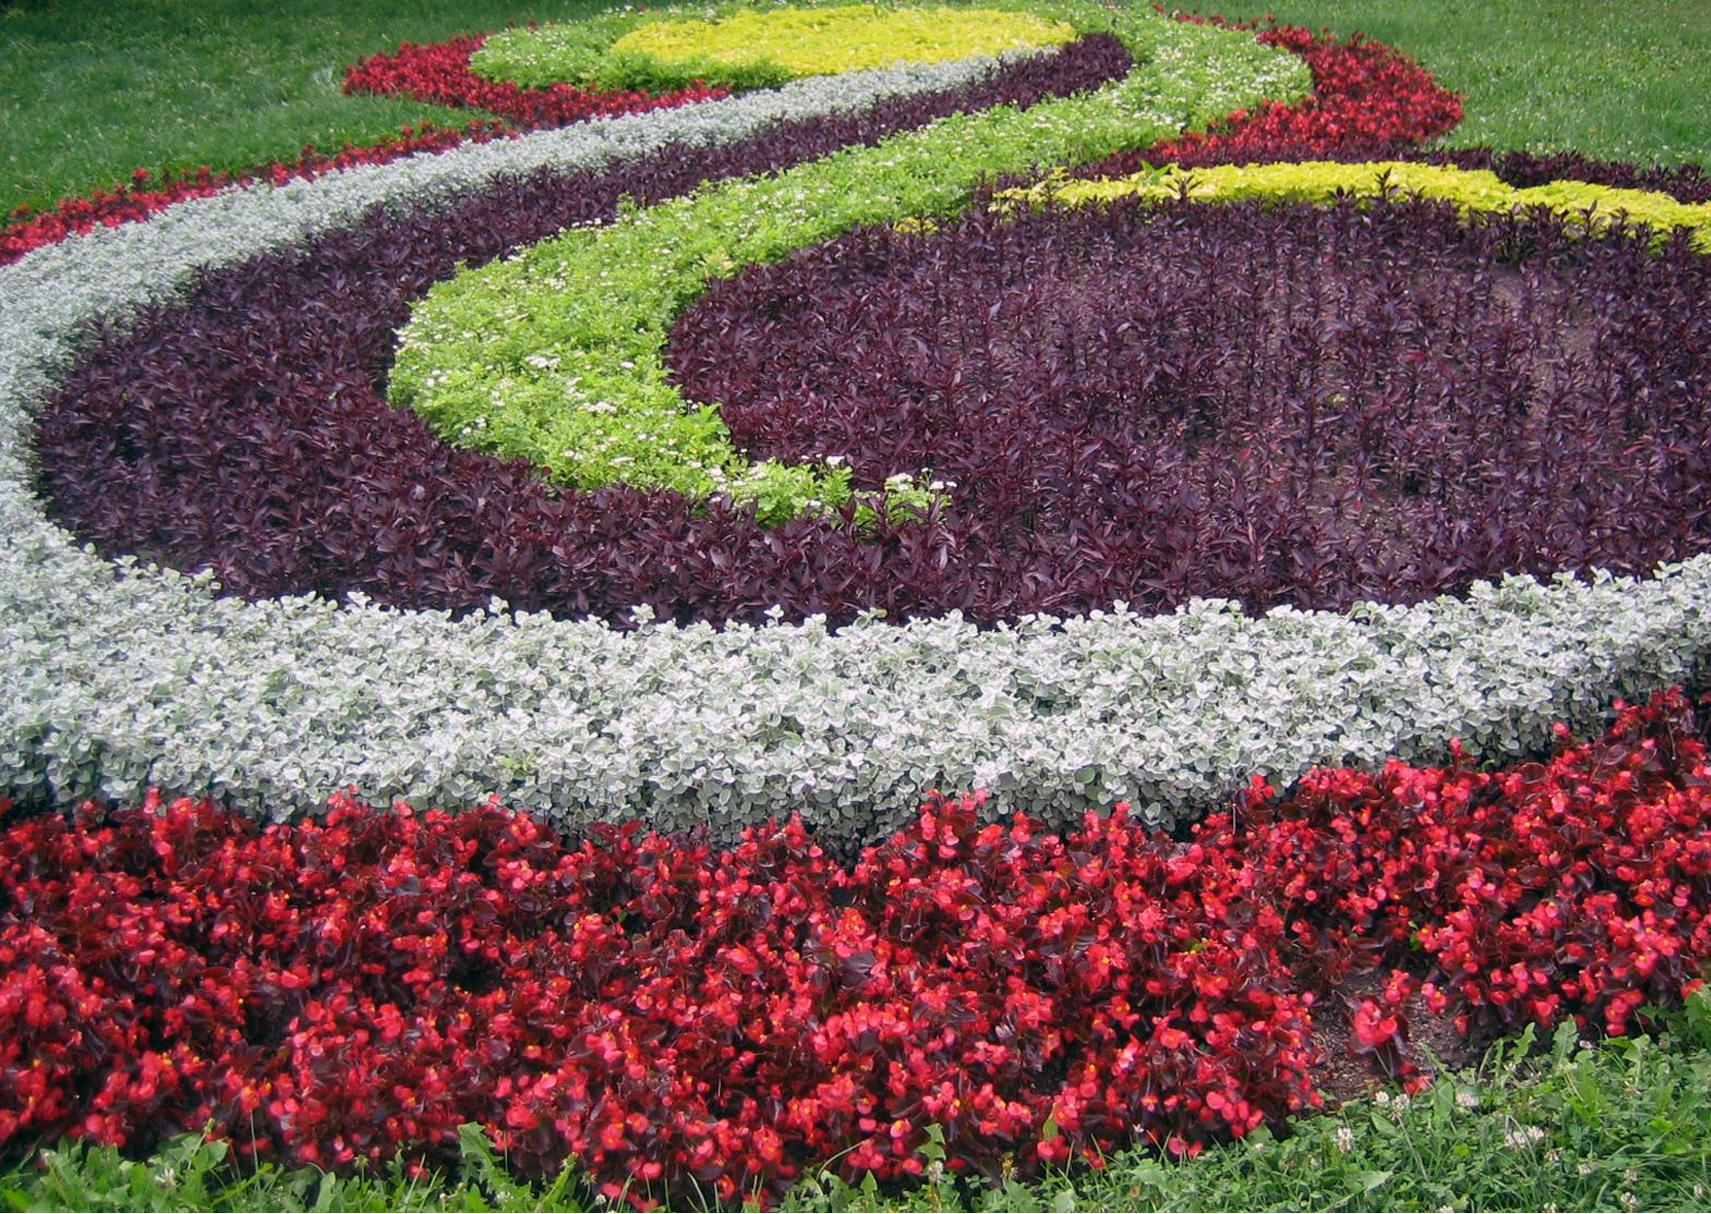 Stunning Design Of The Red White And Purple Flower Combining Become Flower Bed Ideas For The Backyard Areas